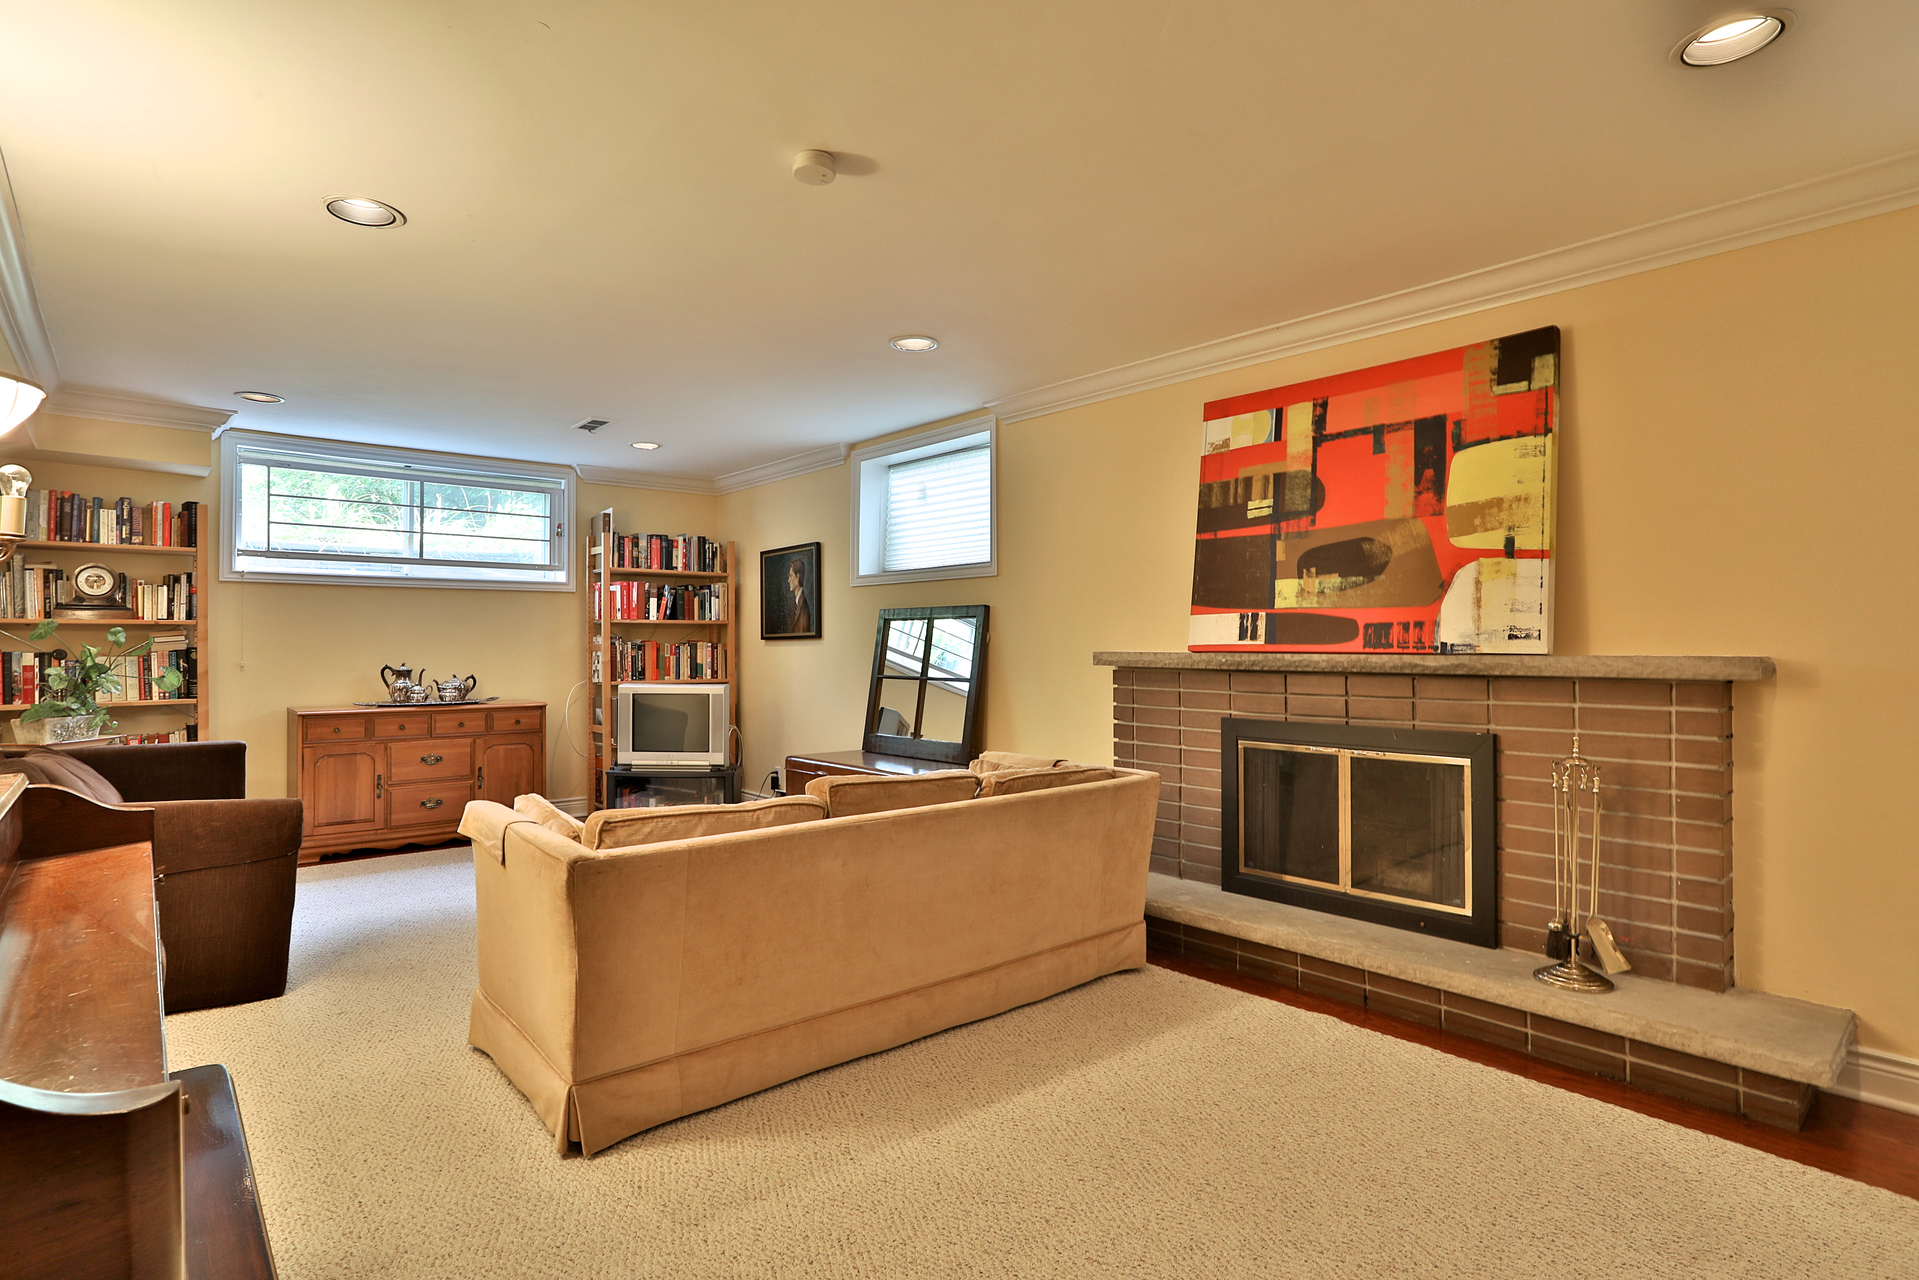 Recreation Room at 5 Carnwath Crescent, St. Andrew-Windfields, Toronto